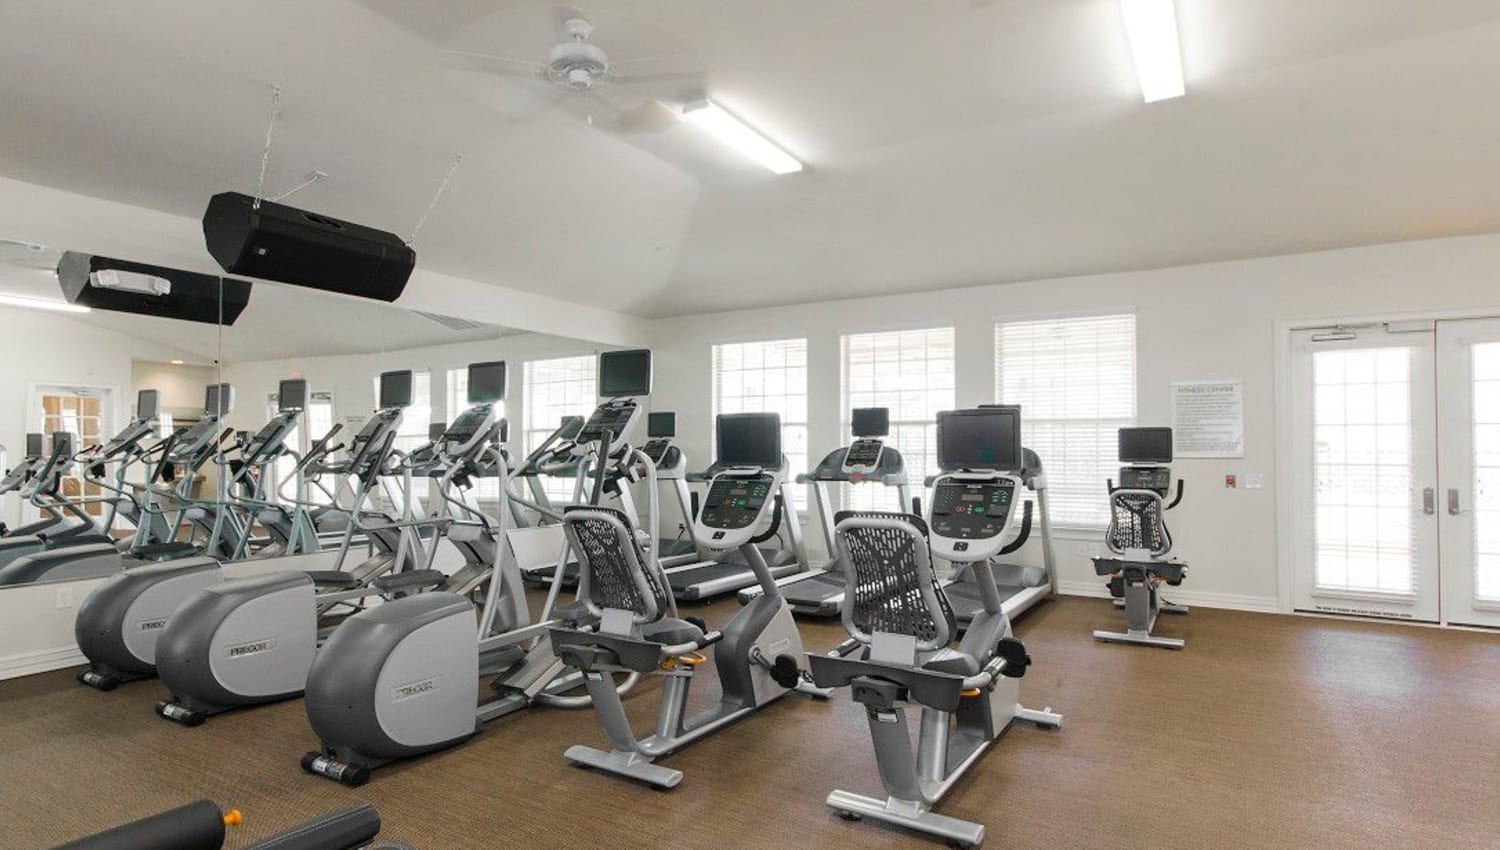 Plenty of cardio machines in the fitness center at Olympus Woodbridge in Sachse, Texas